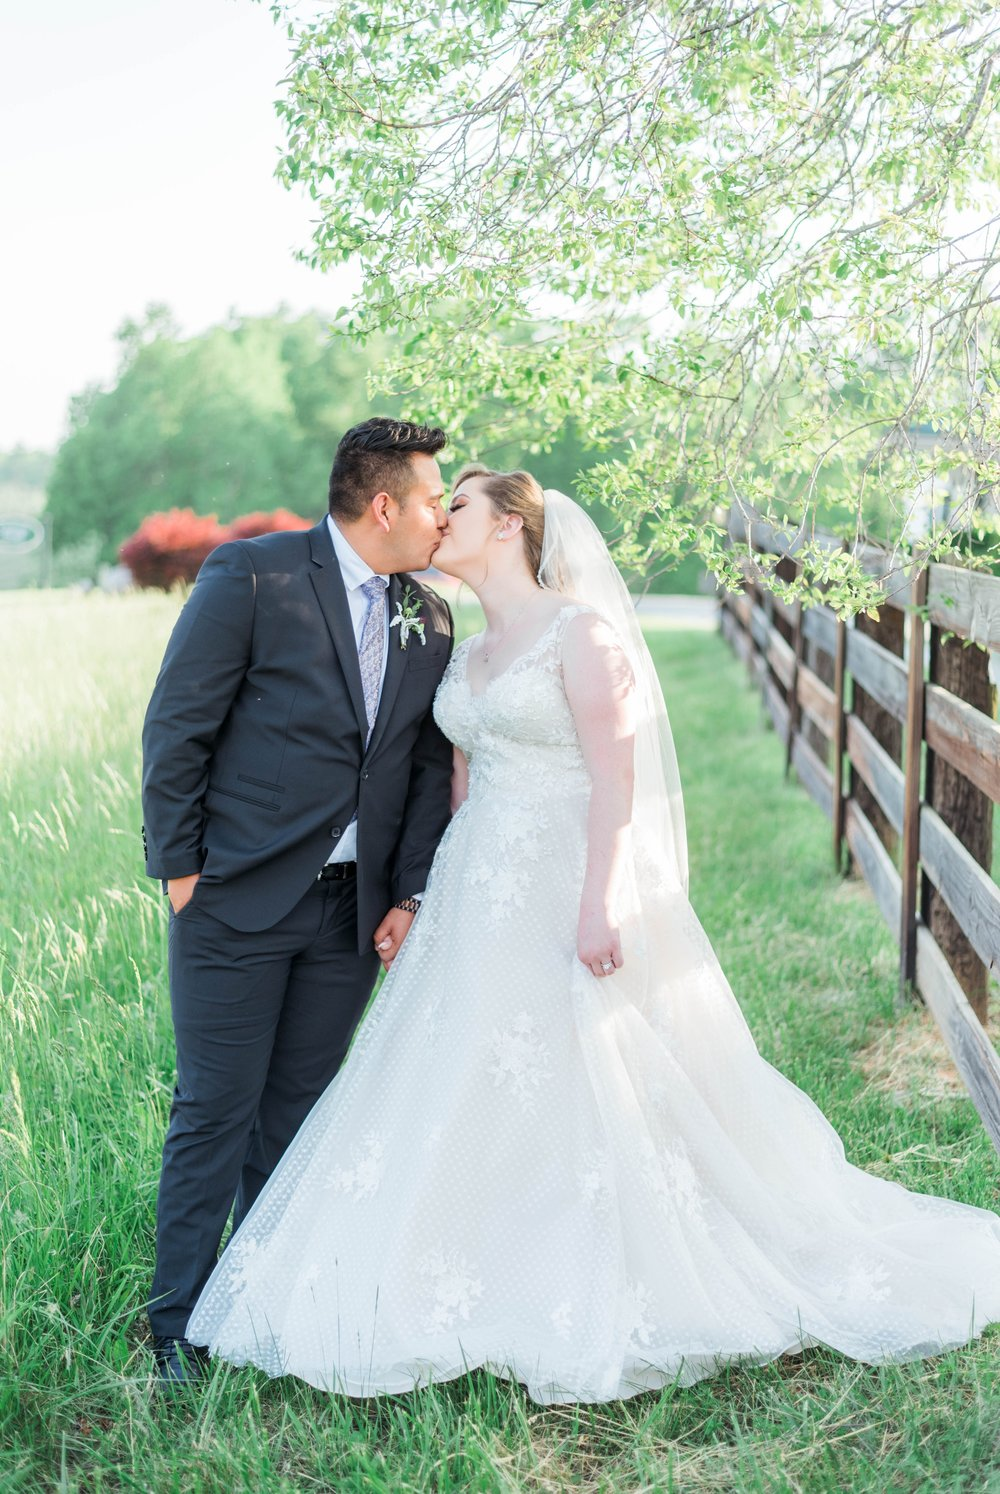 Jillian+Abi_OakridgeEstate_Wedding_VirginiaWeddingPhotographer_SpringWedding 26.jpg